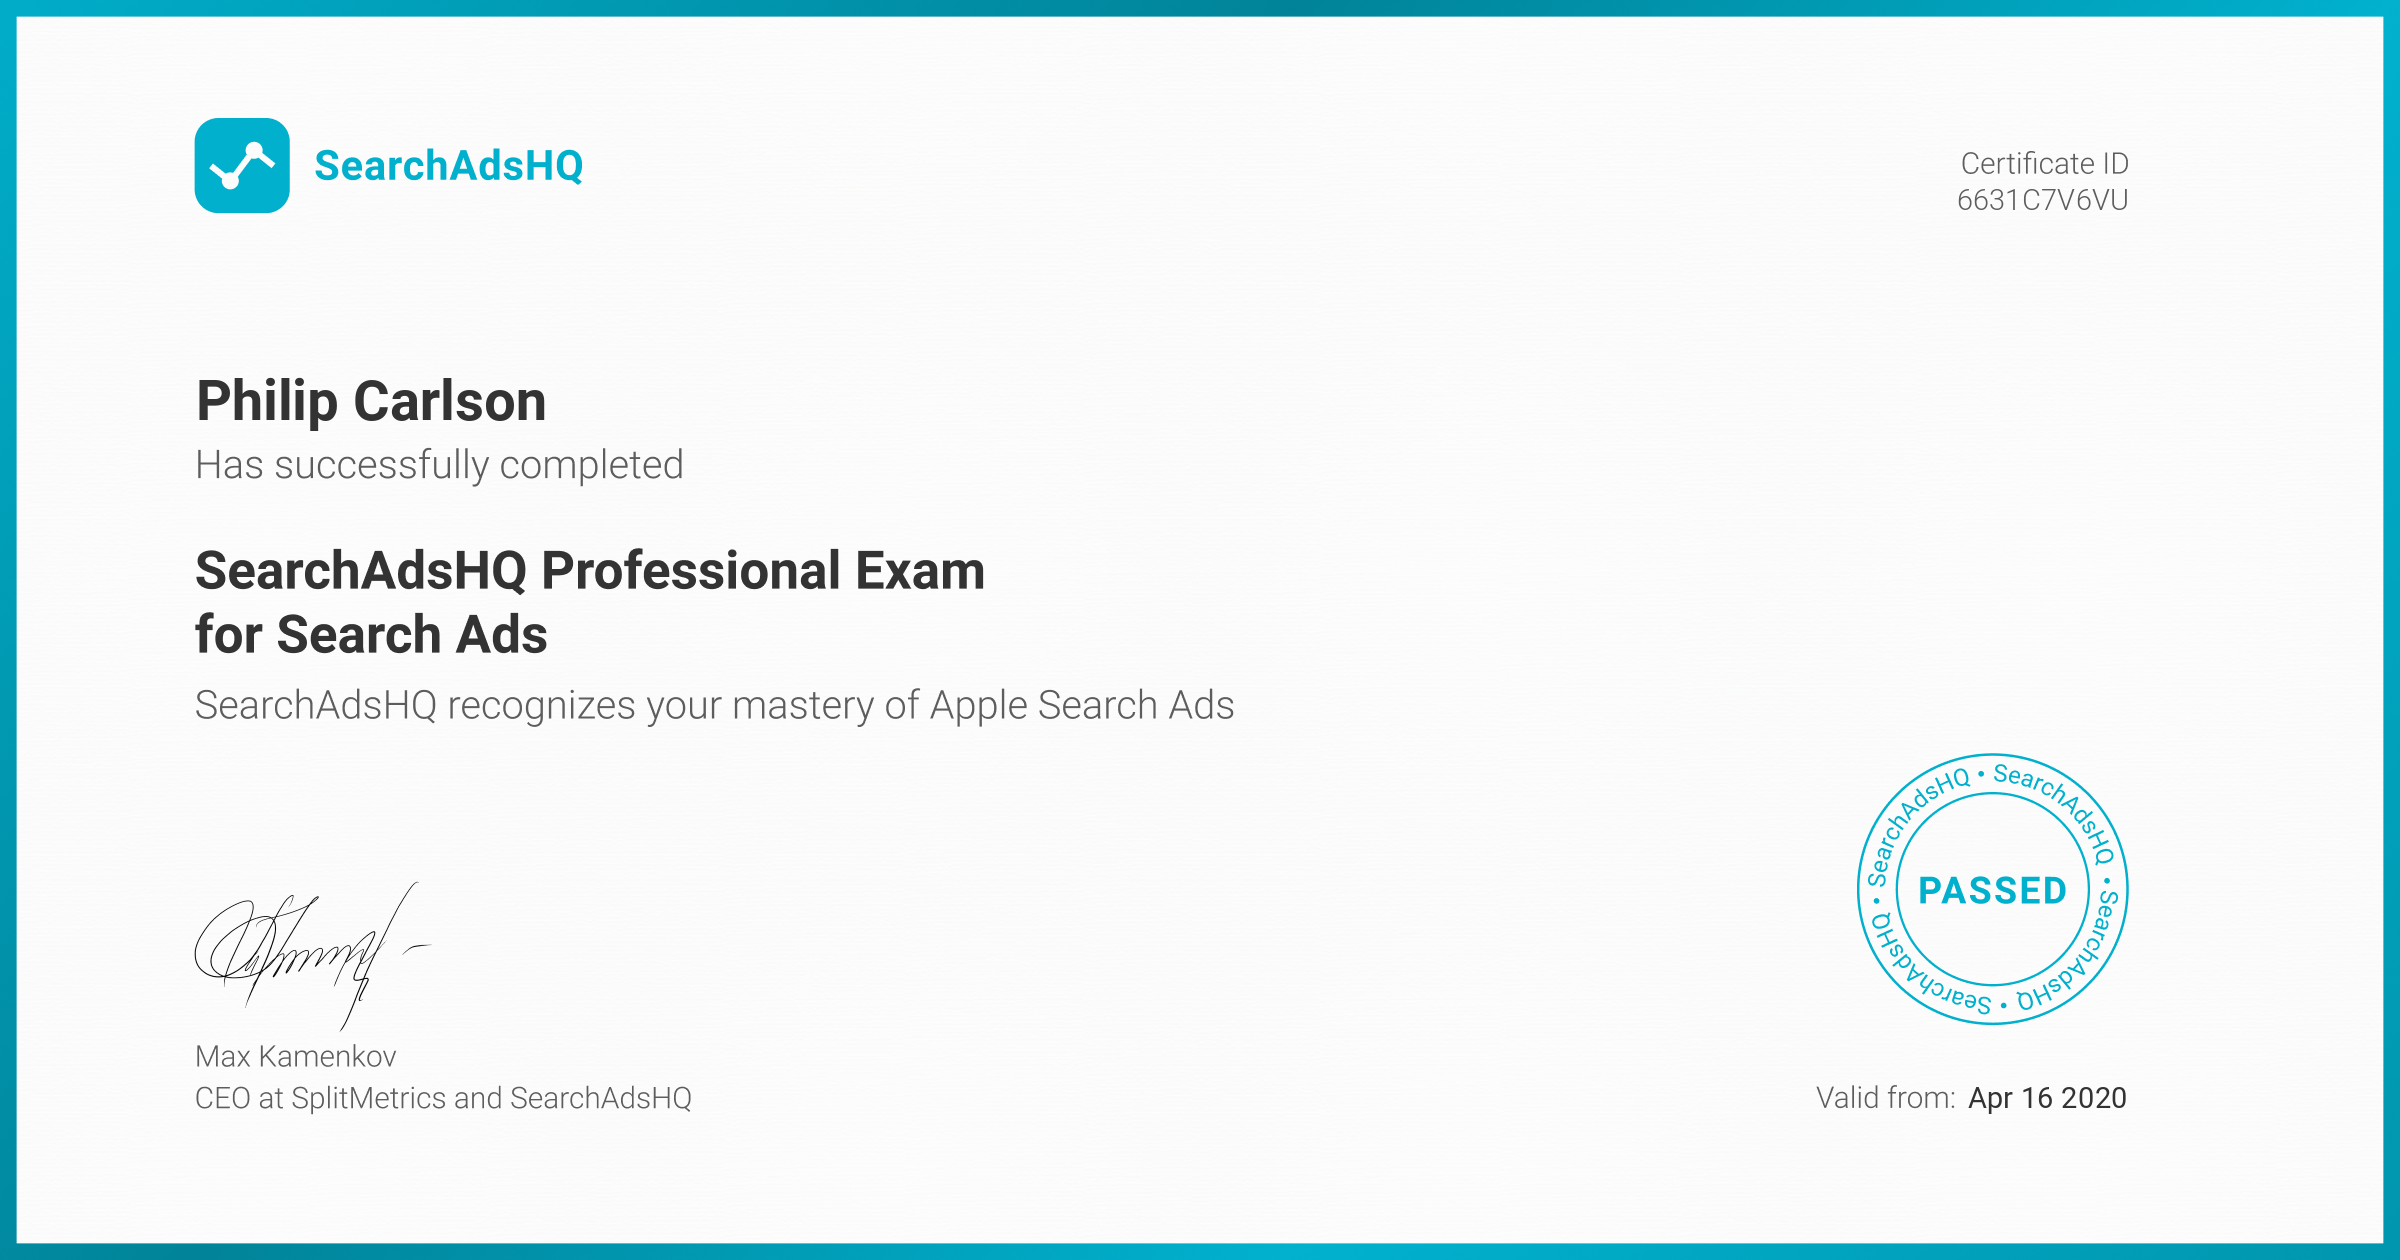 Certificate for Philip Carlson | SearchAdsHQ Professional Exam for Search Ads